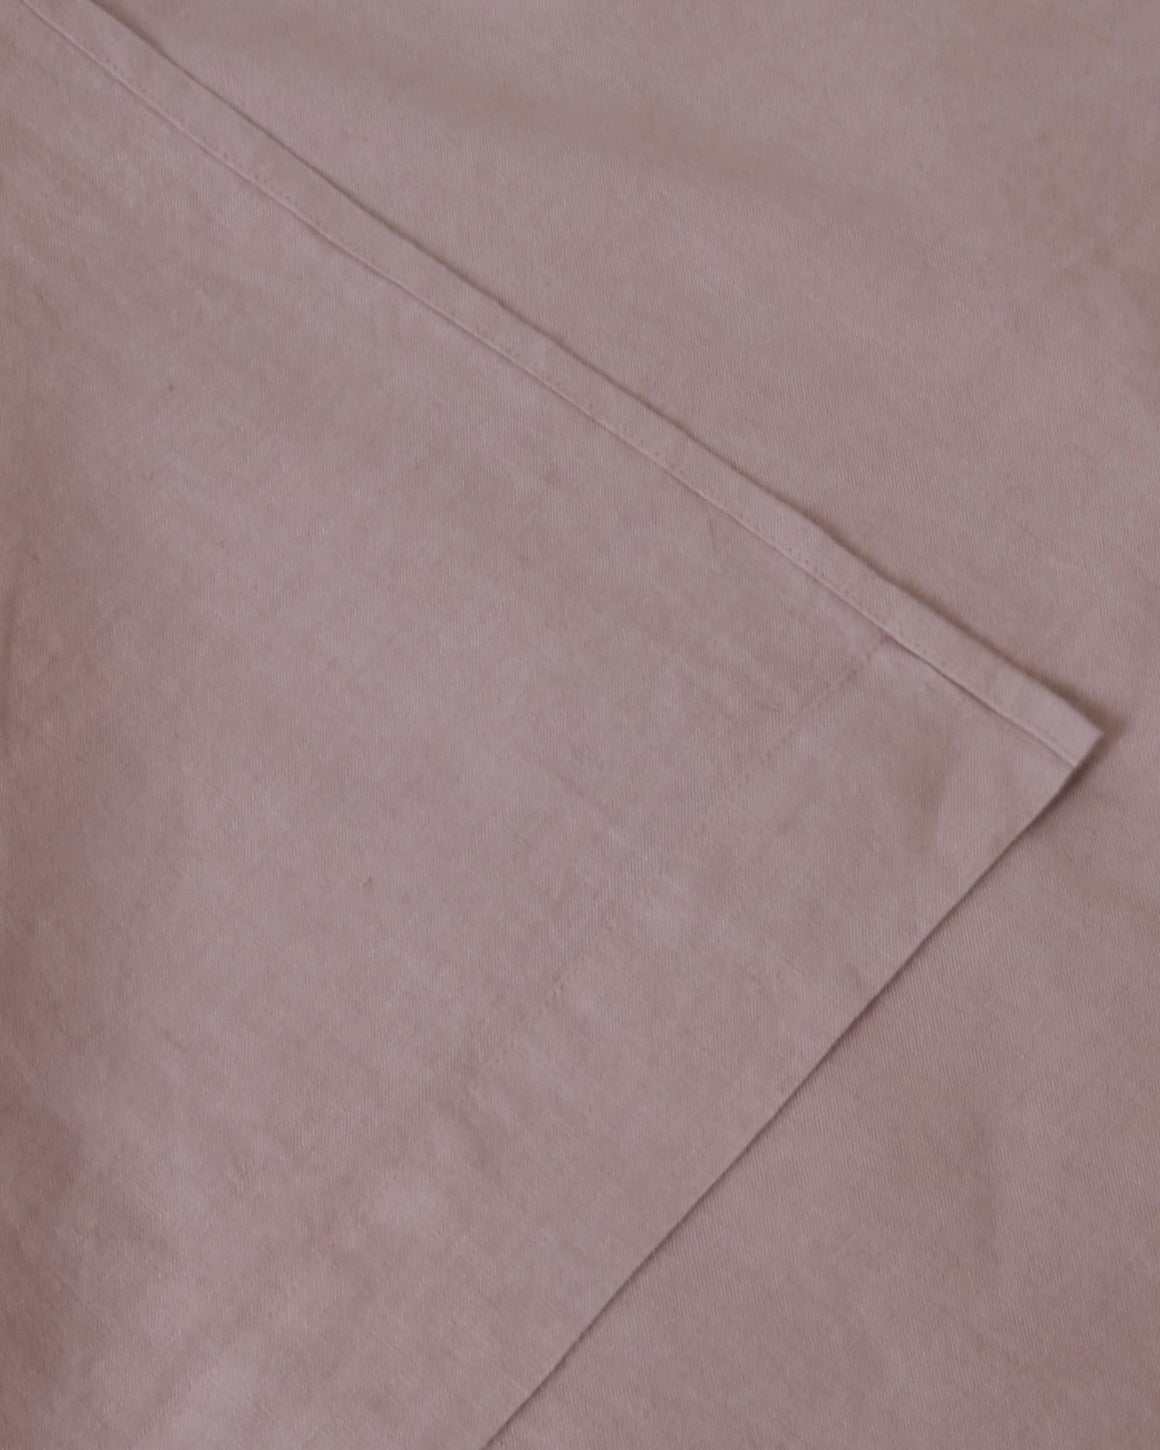 Linen sheets collection set in a orchid pink color